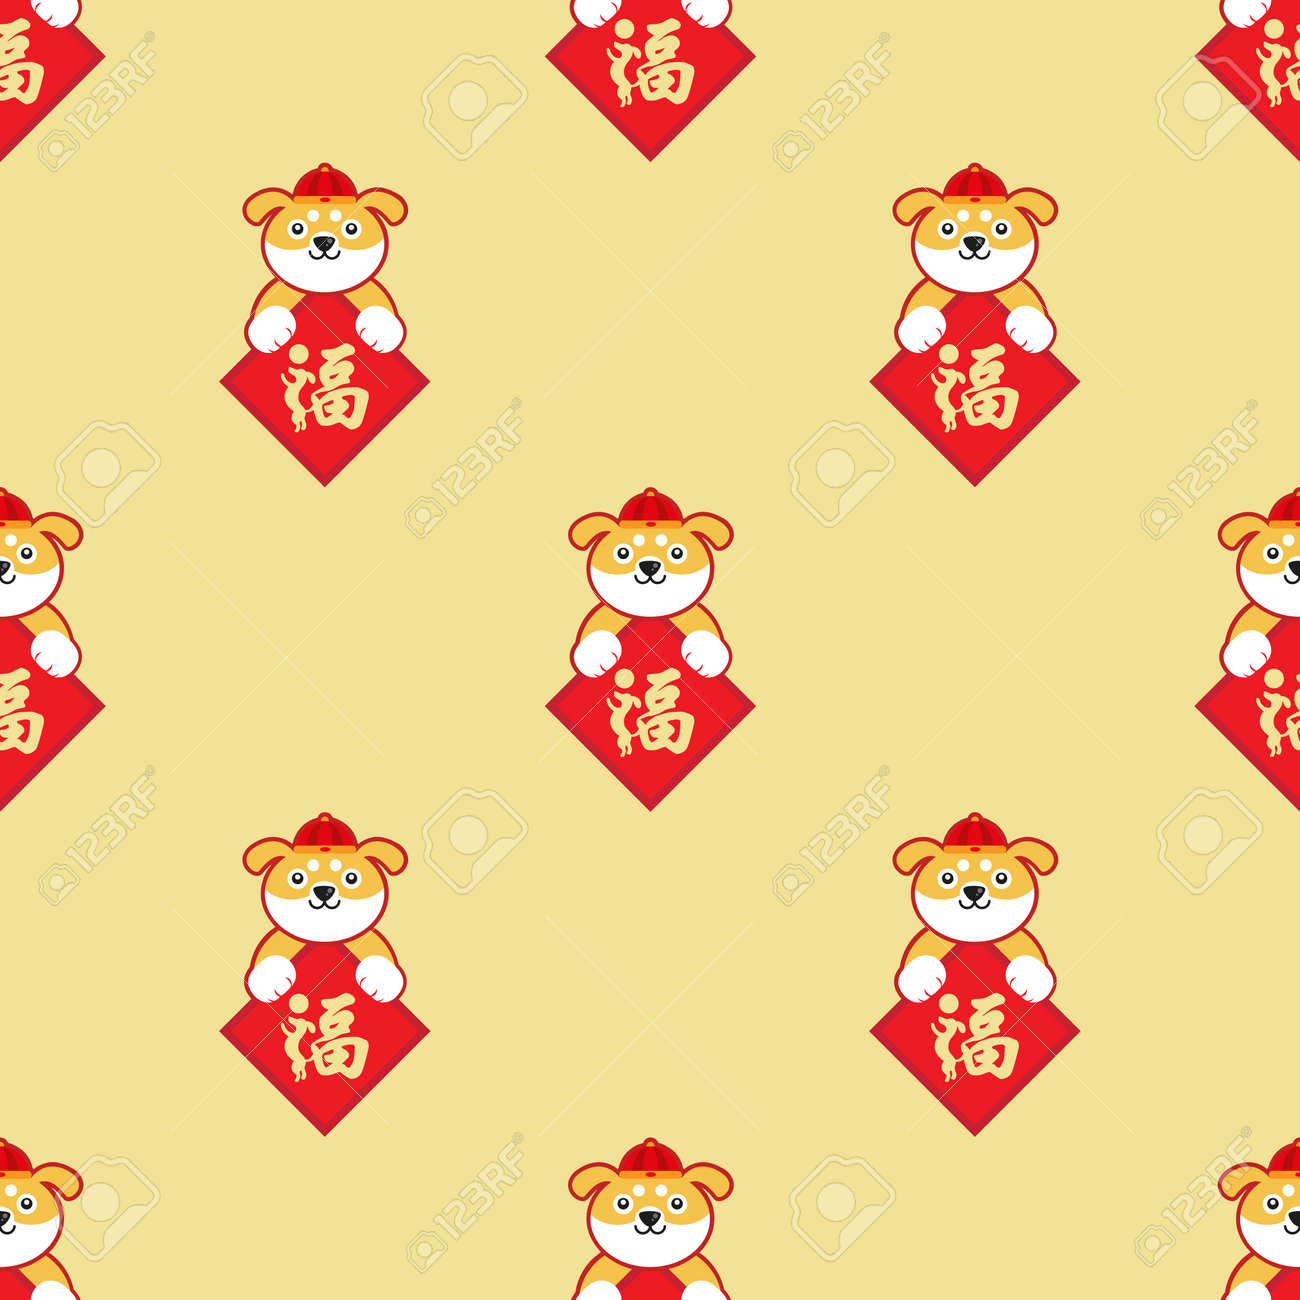 Chinese New Year Wallpaper. Celebrate Year Of The Dog. Royalty